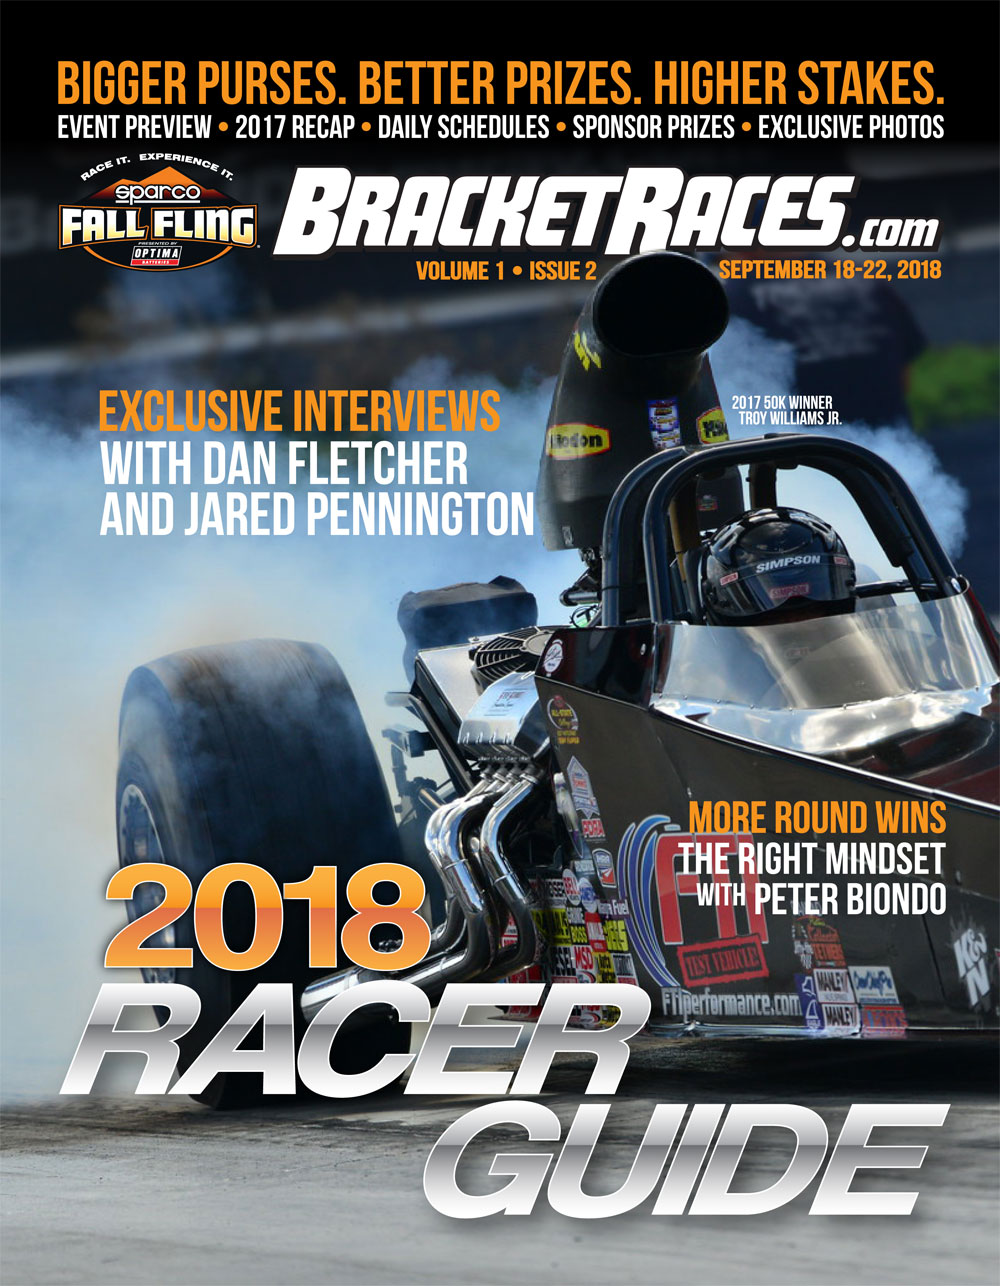 2018 Fall Fling Bristol Racer Guide page 1